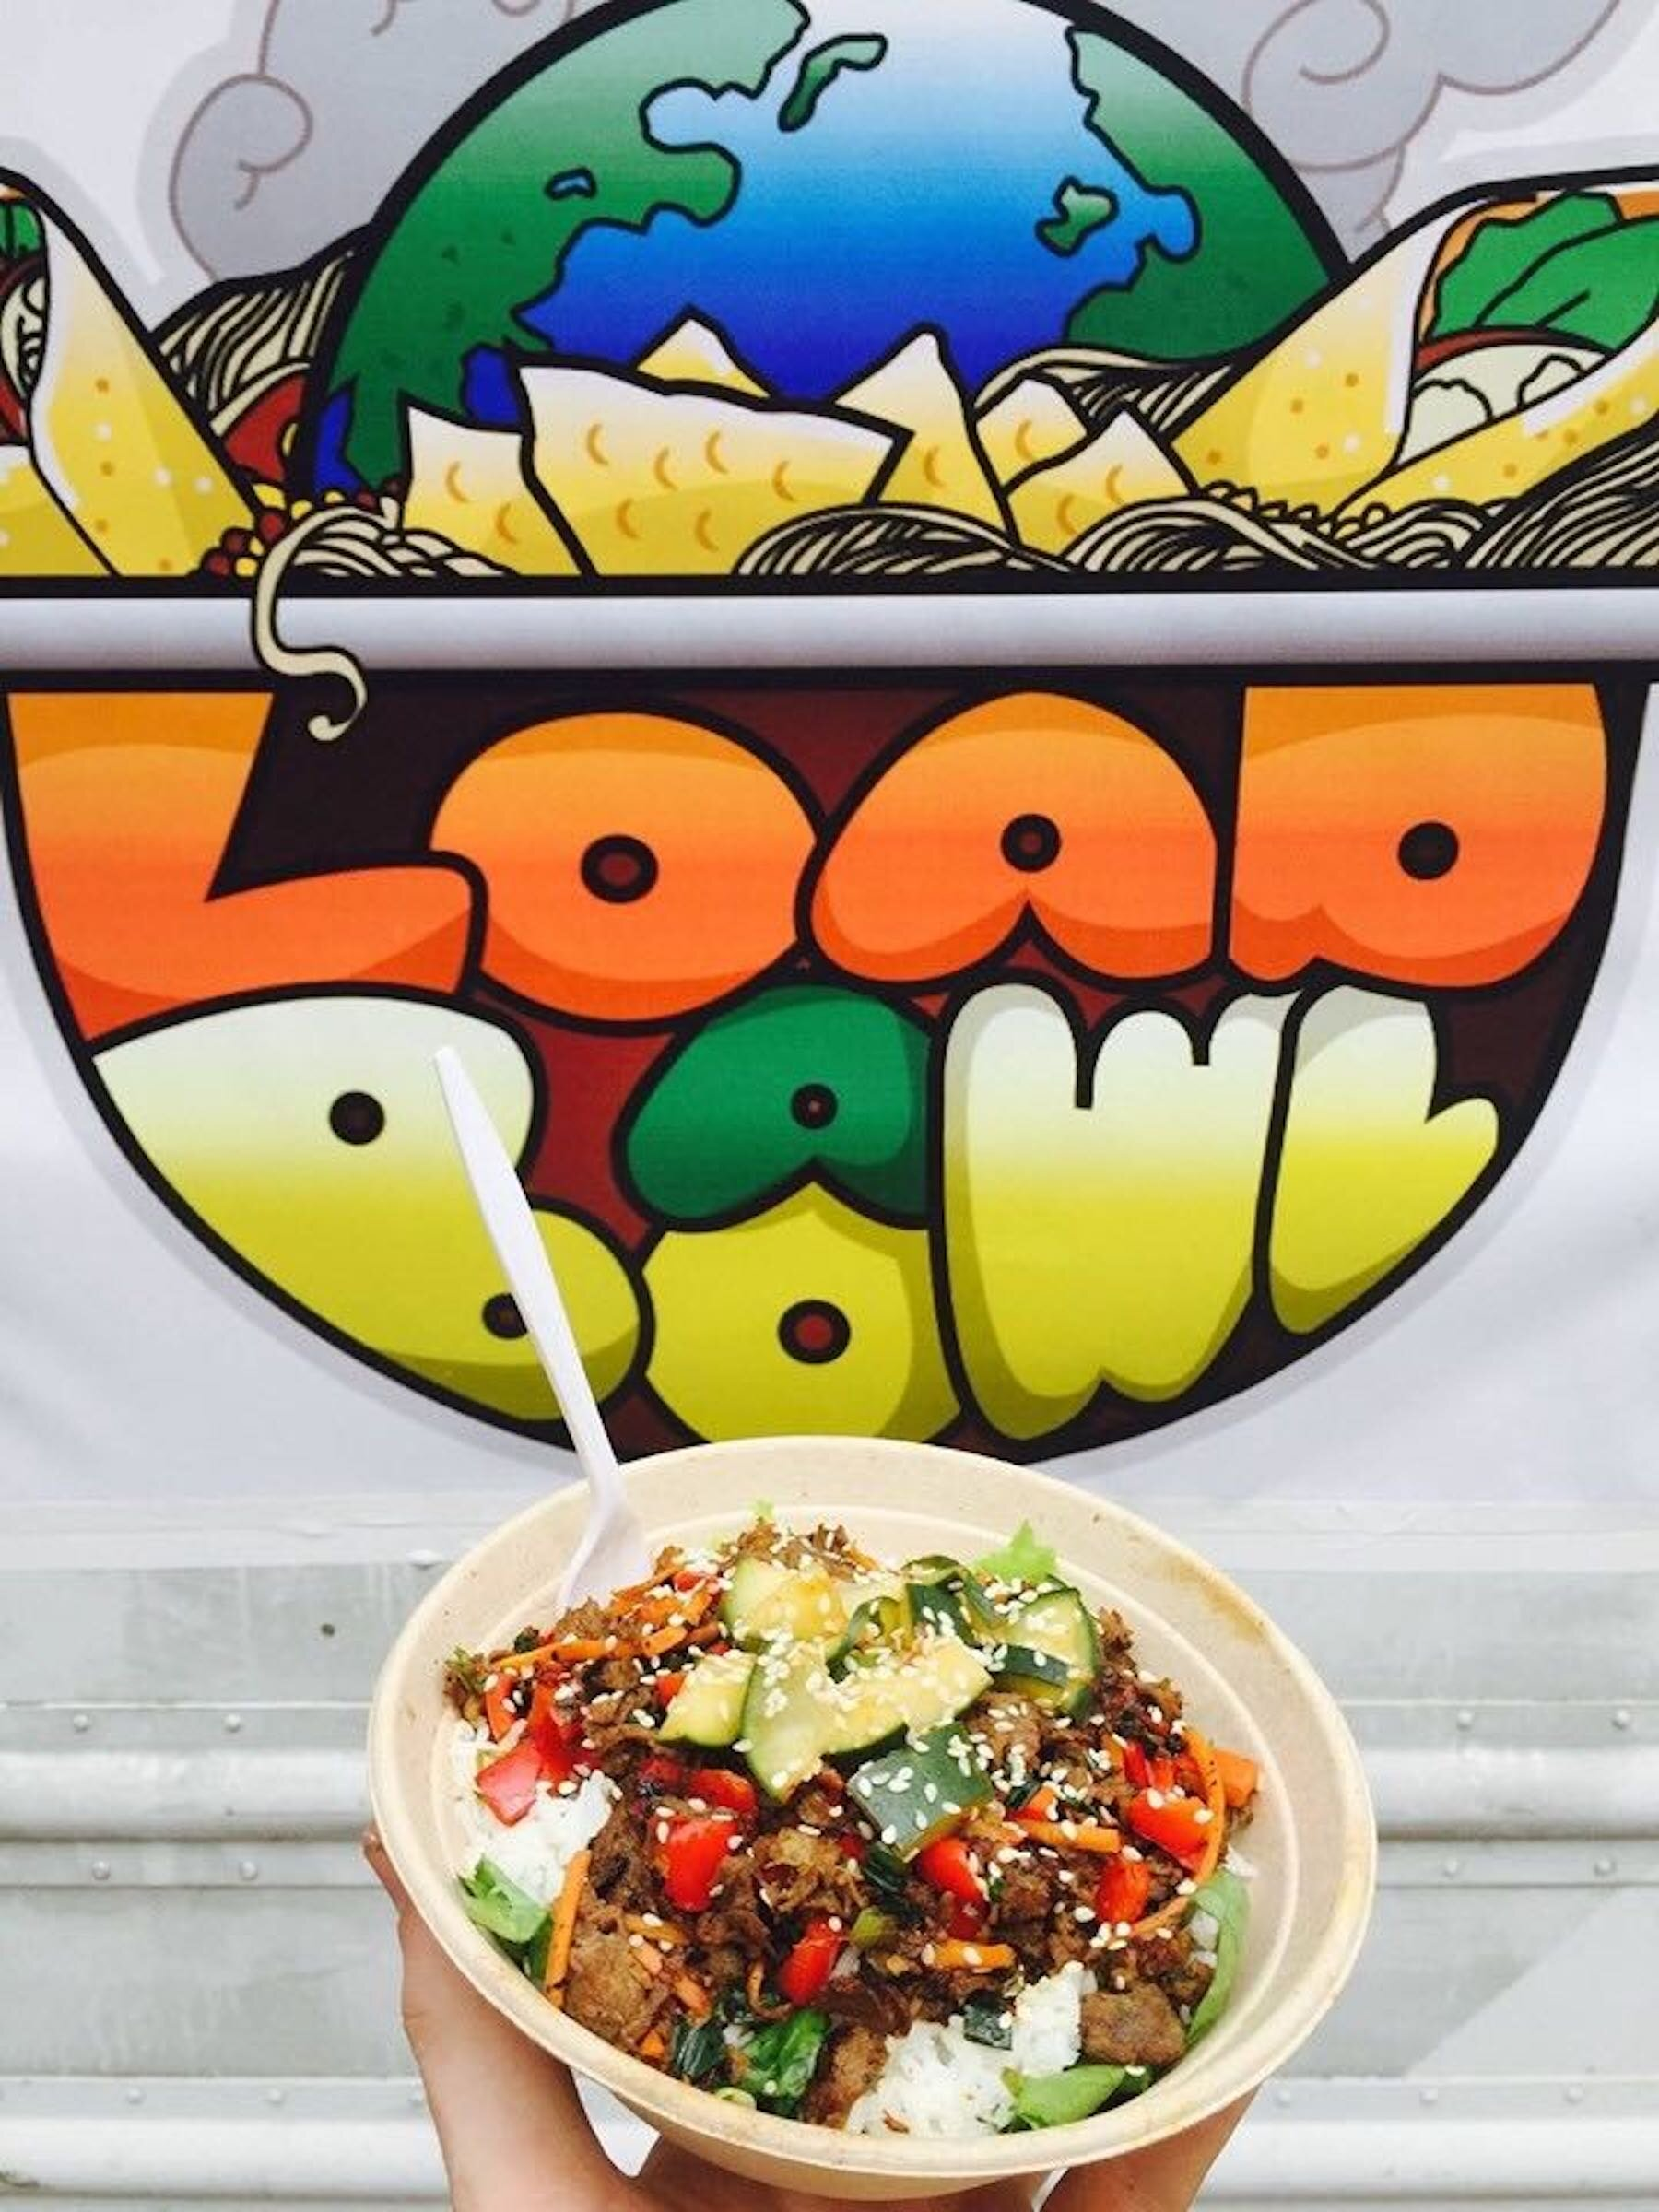 Photo Courtesy of Load A Bowl